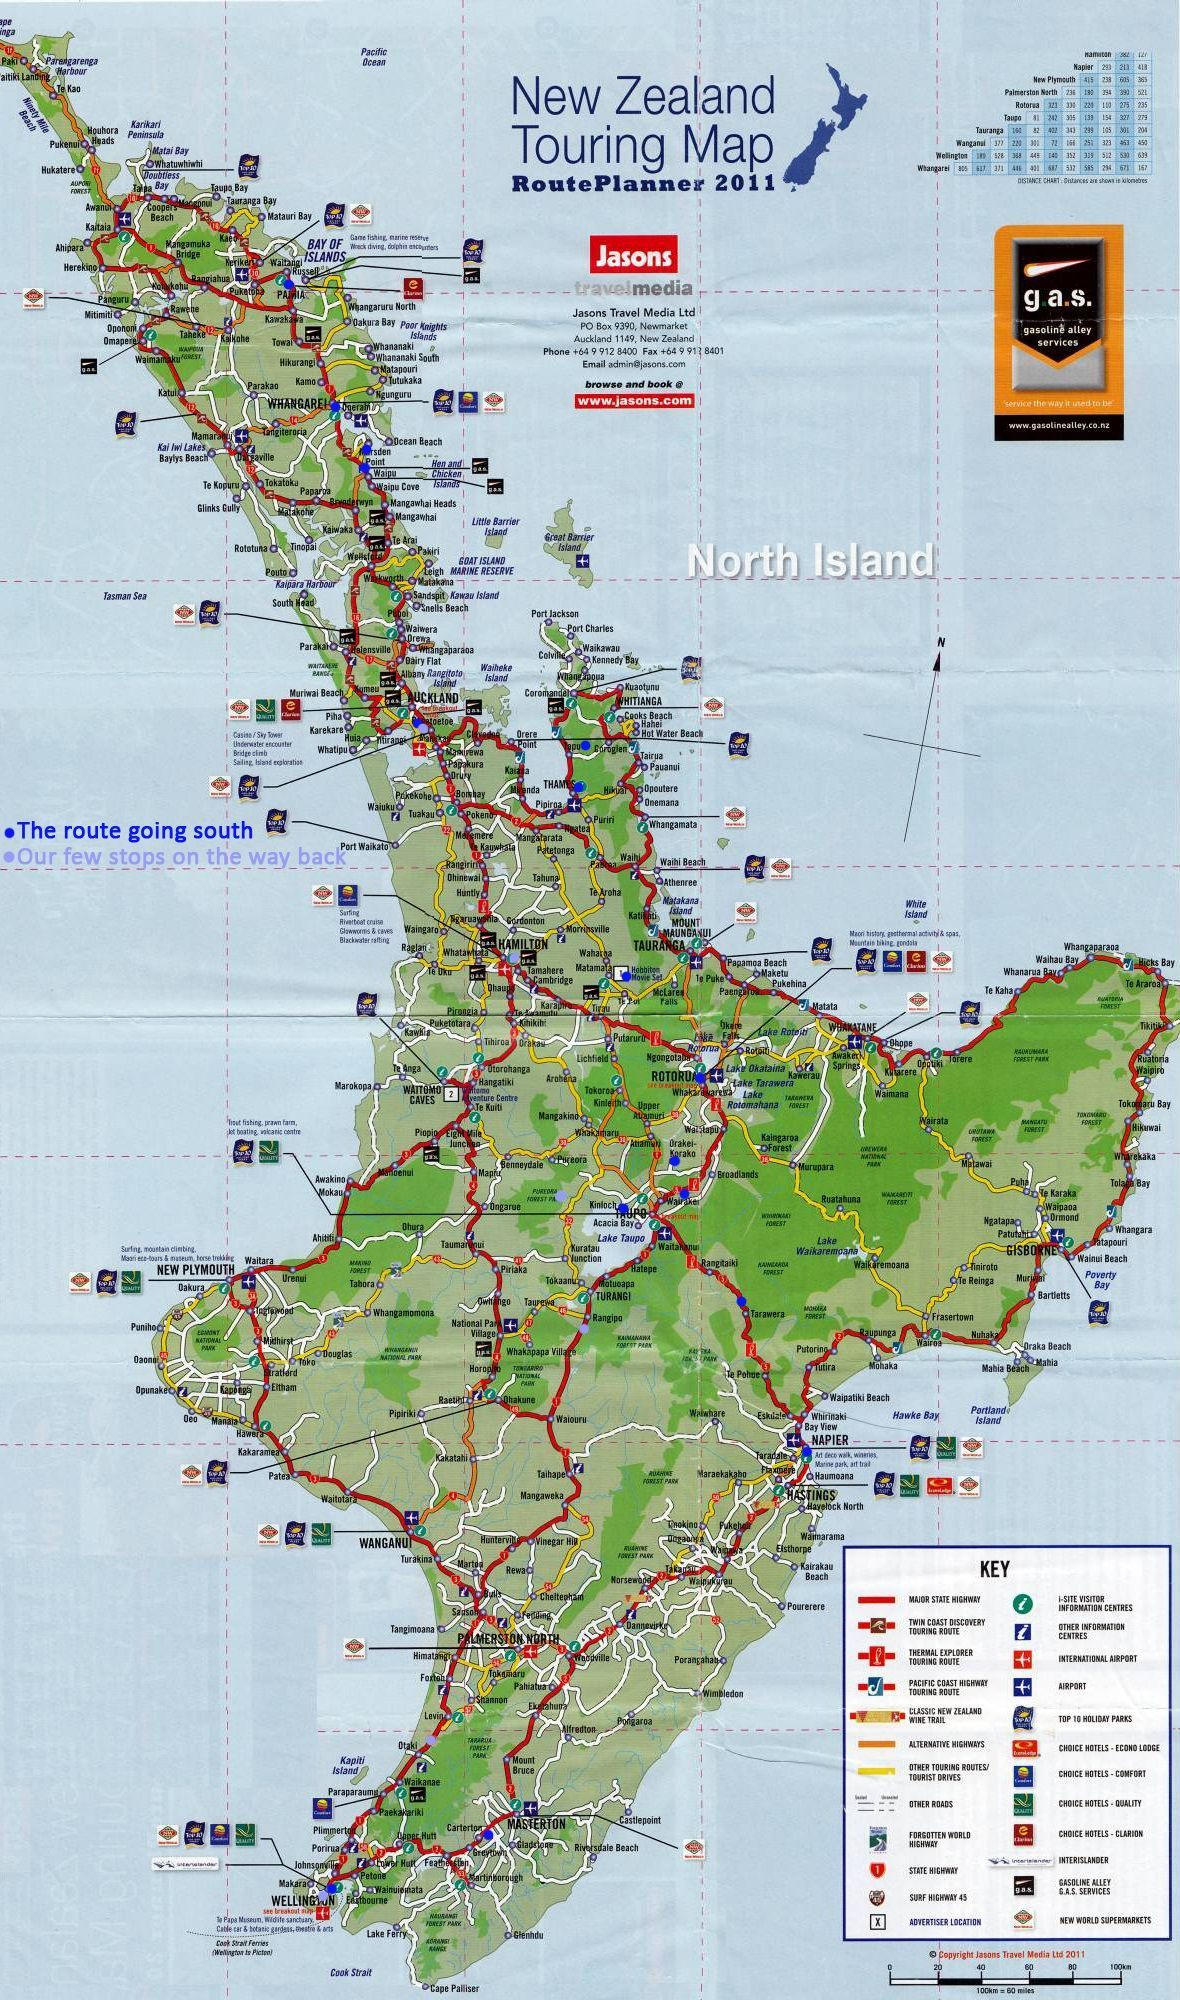 Map Of North Island New Zealand Towns.Pin By Lindsey Mclevis On Travel New Zealand Holidays